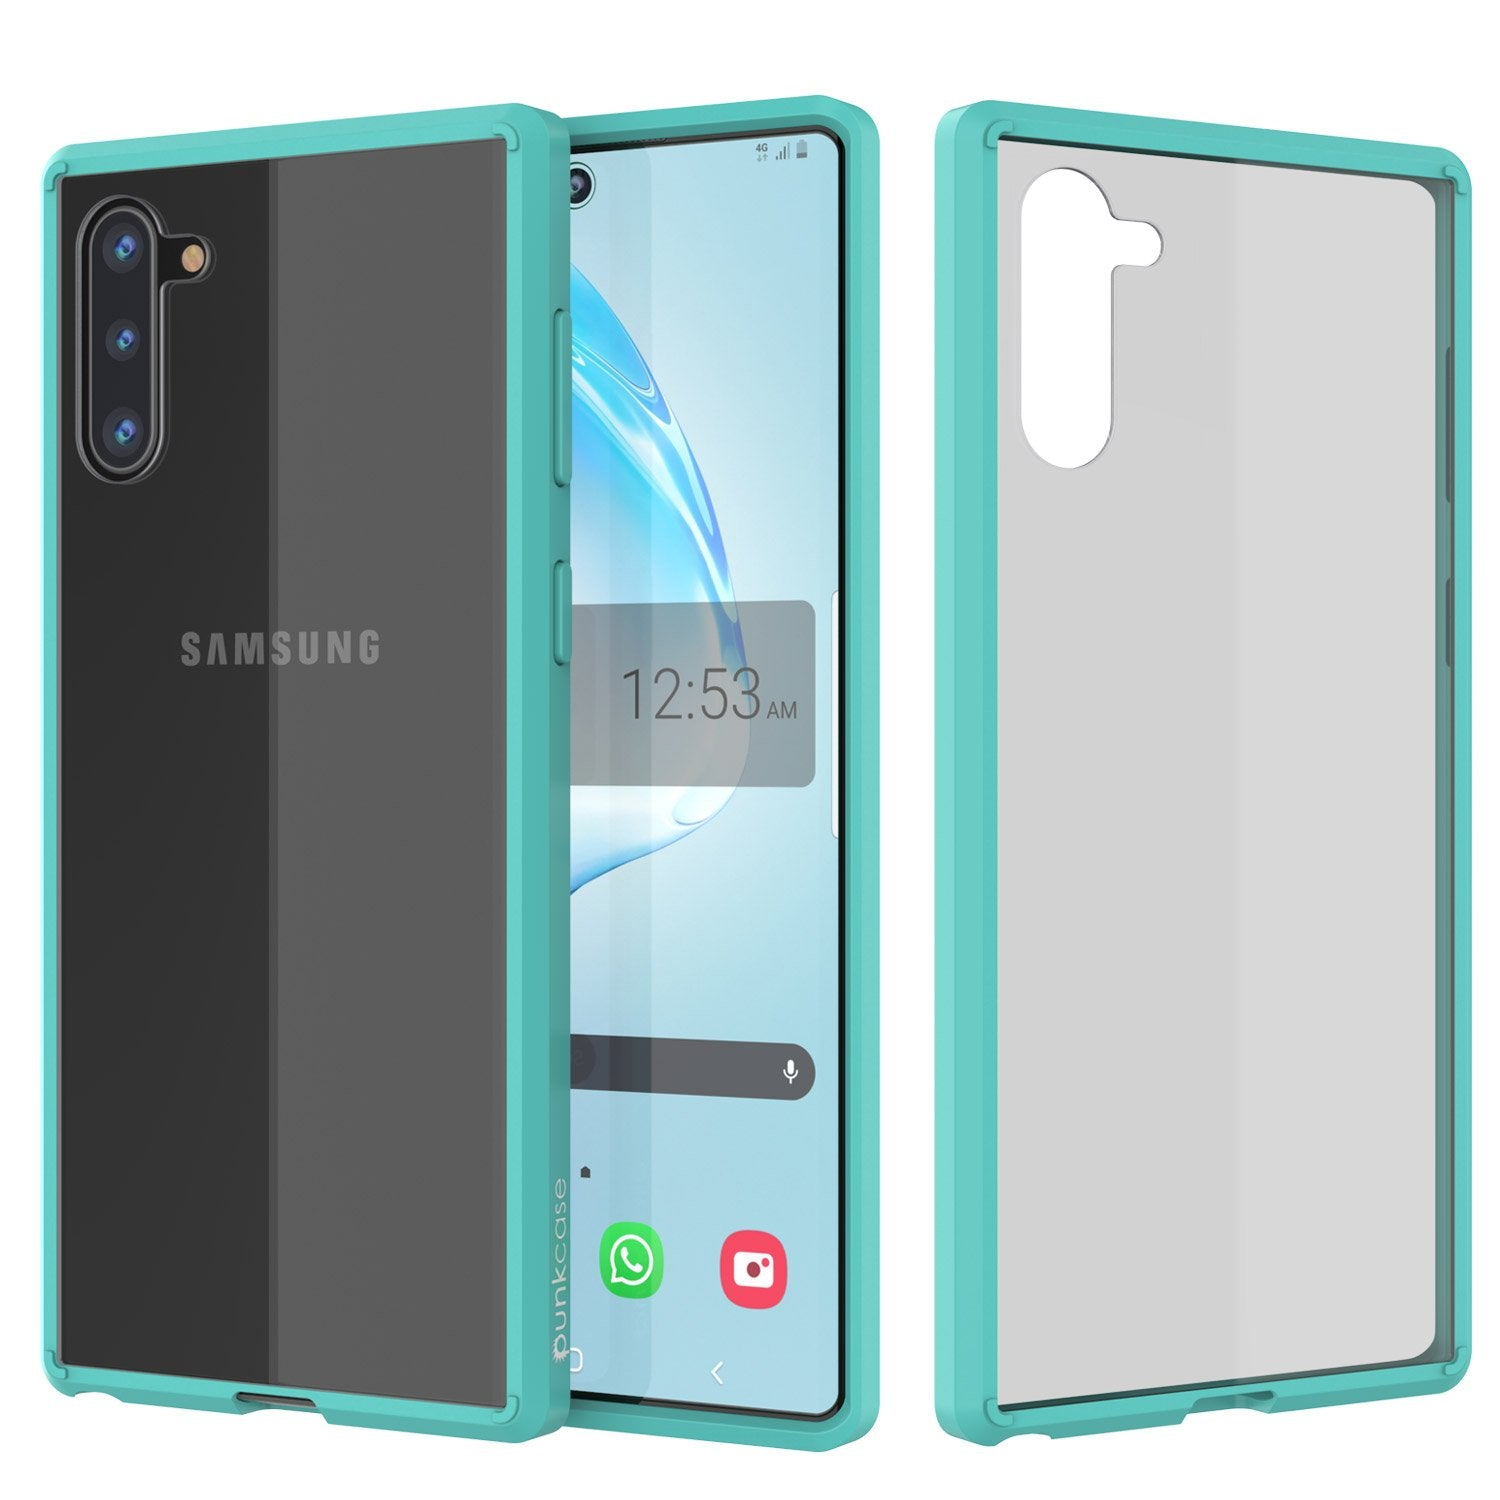 Galaxy Note 20 Punkcase Lucid-2.0 Series Slim Fit Armor Teal Case Cover